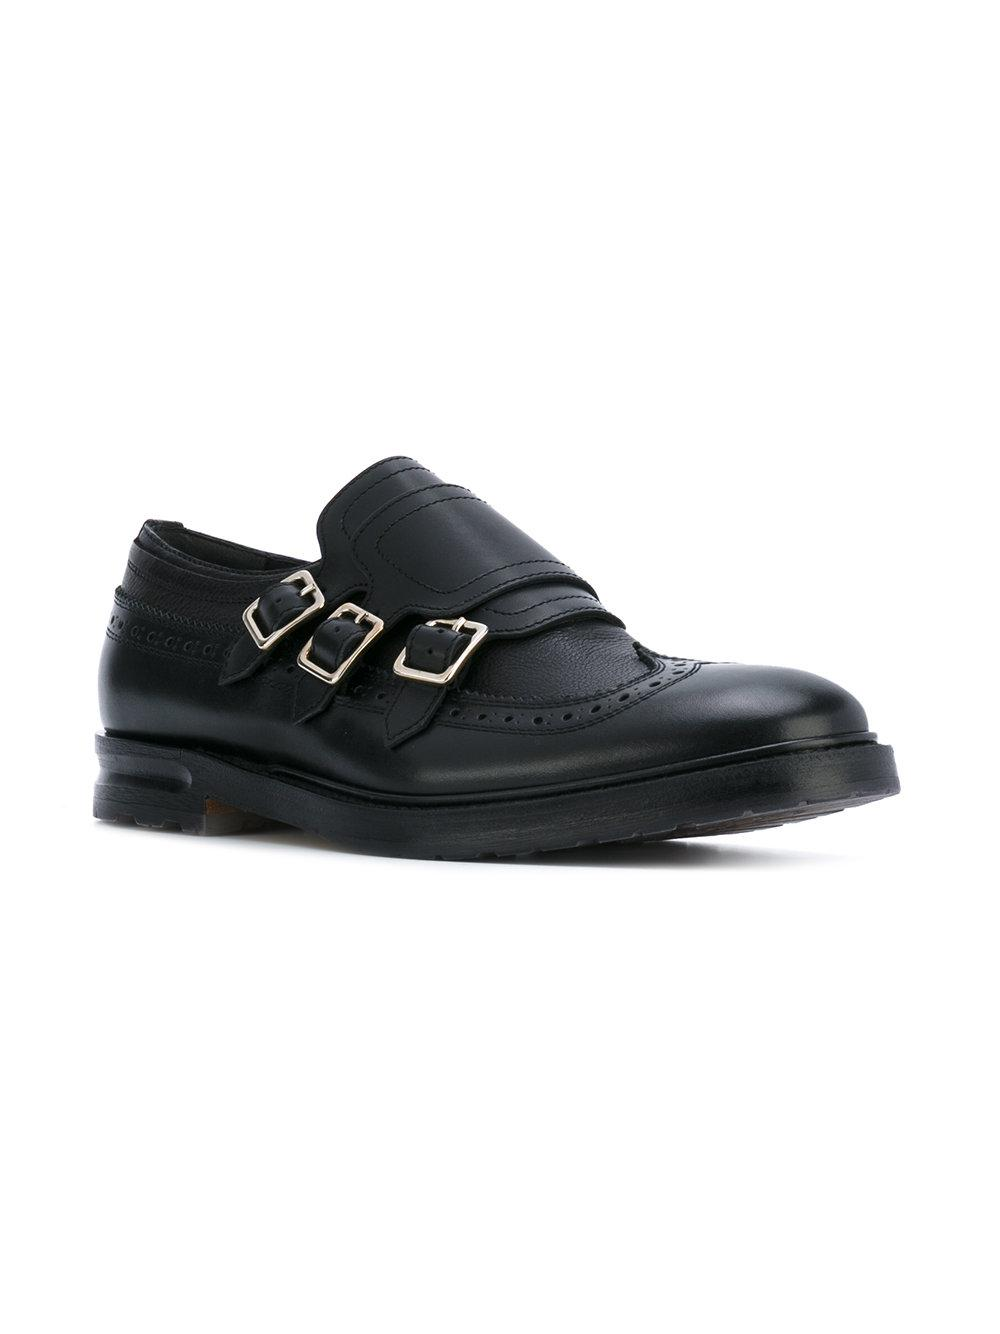 141012ac698 Alexander McQueen Three Strap Monk Shoes in Black for Men - Lyst